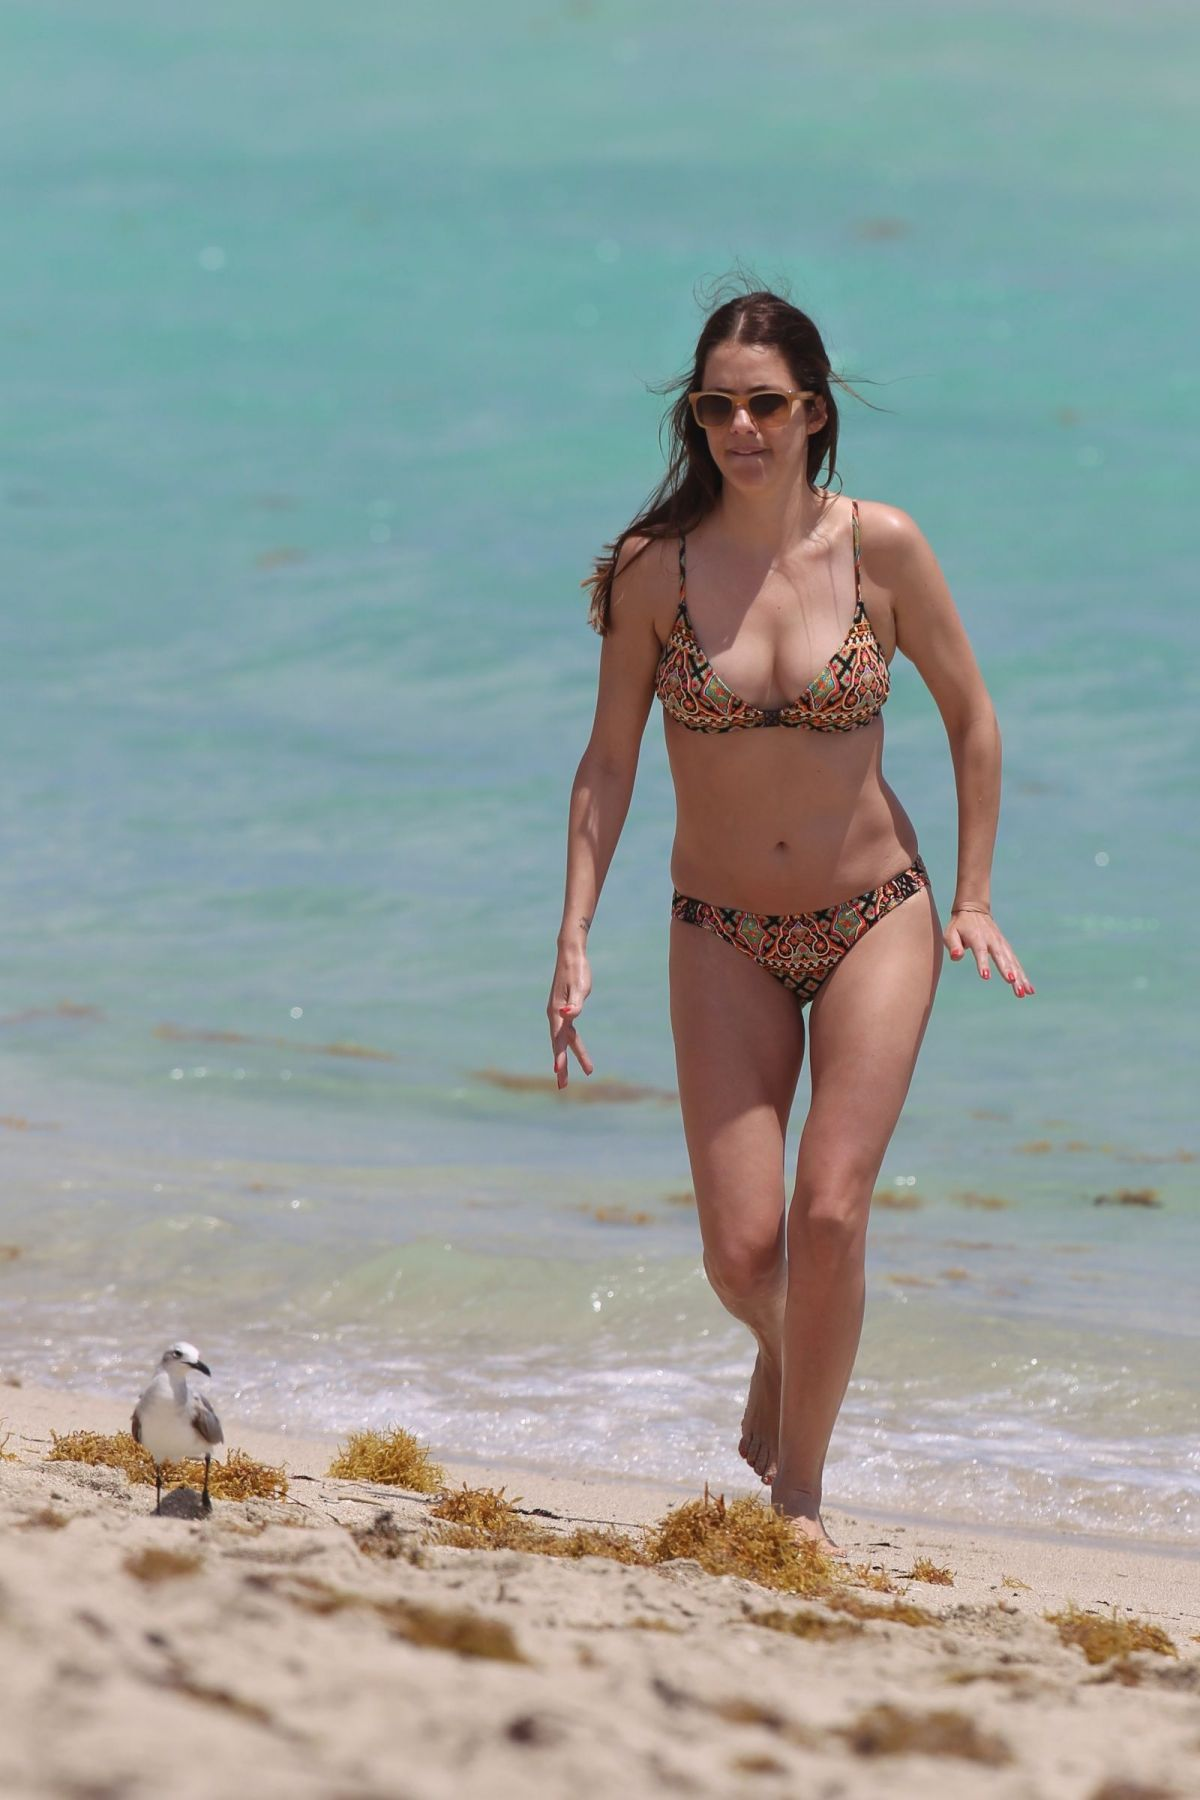 Julie_Gonzalo on 1500 Miami Beach